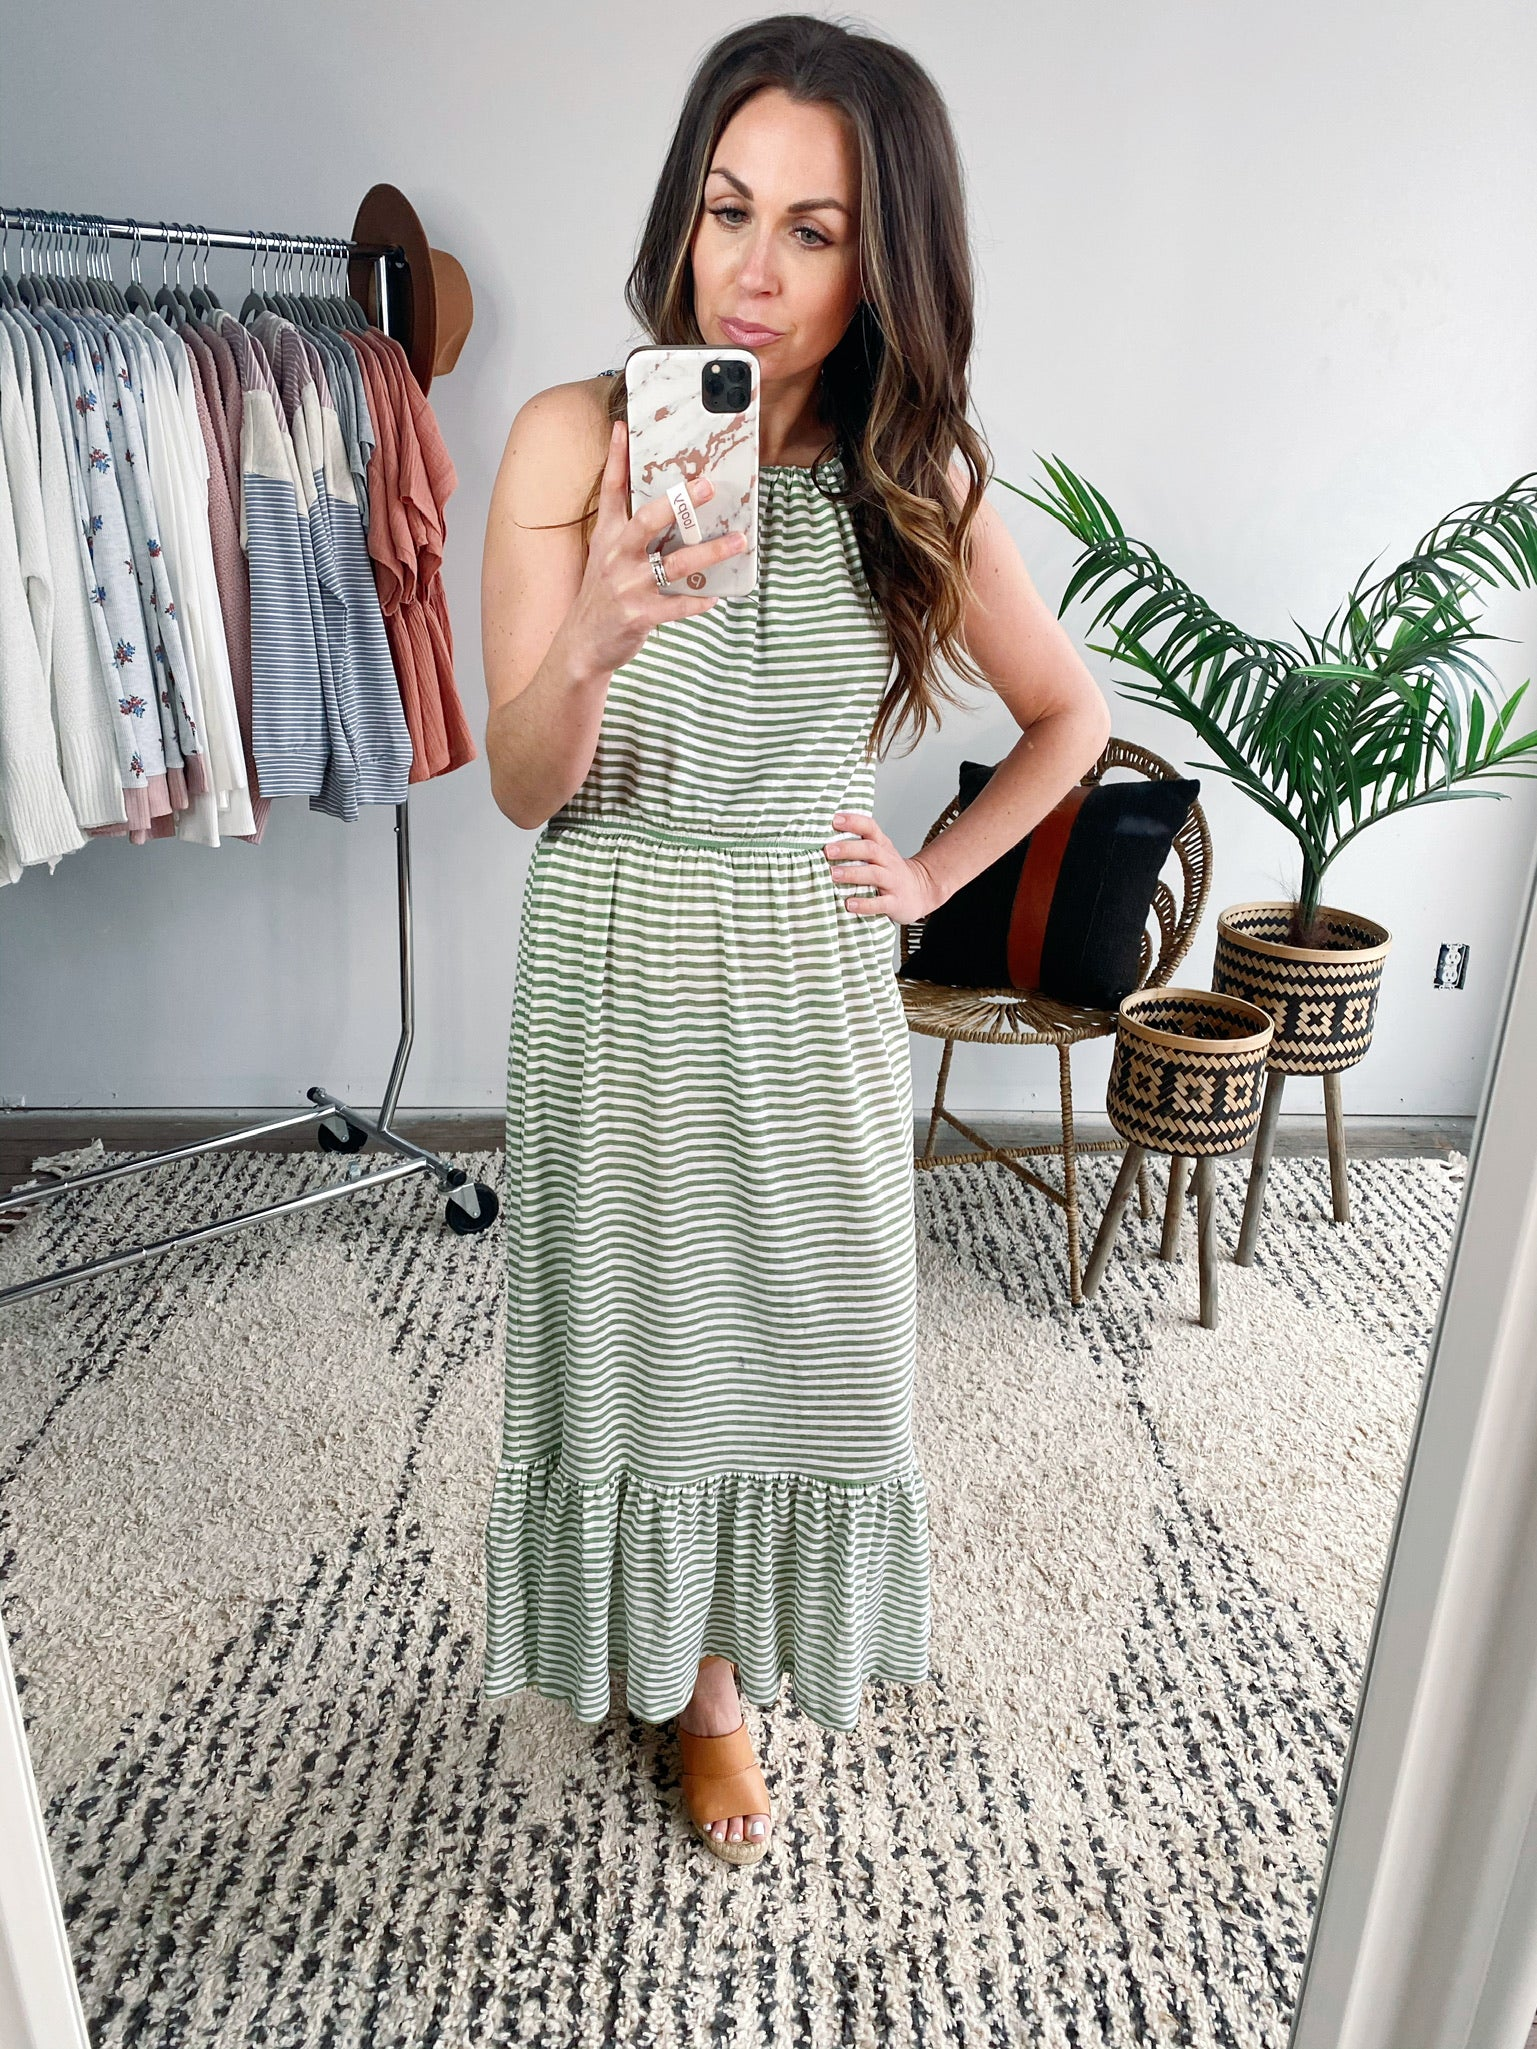 Contrast Tie Striped Midi Dress-VerClare Boutique, Chenoa Illinois